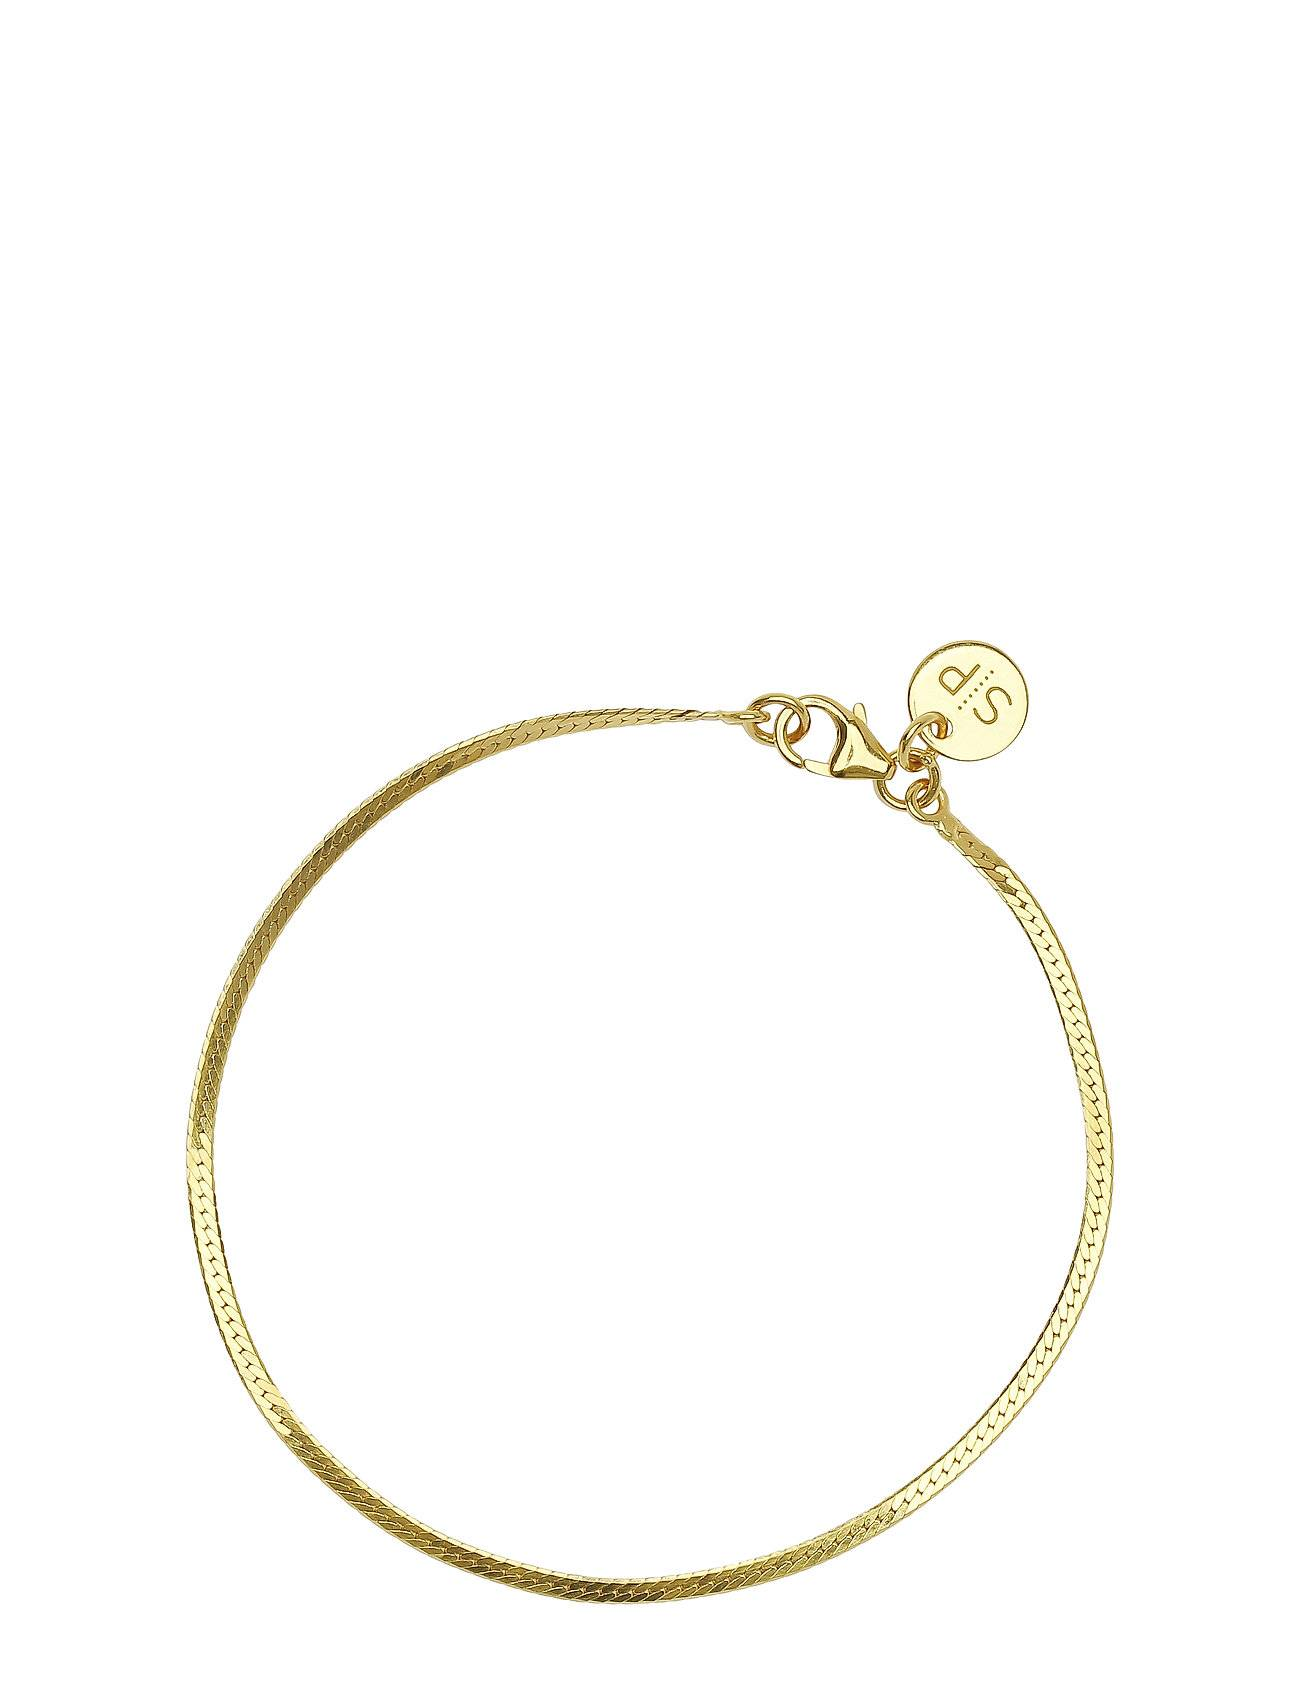 Syster P Herringb Bracelet Gold Accessories Jewellery Bracelets Chain Bracelets Kulta Syster P